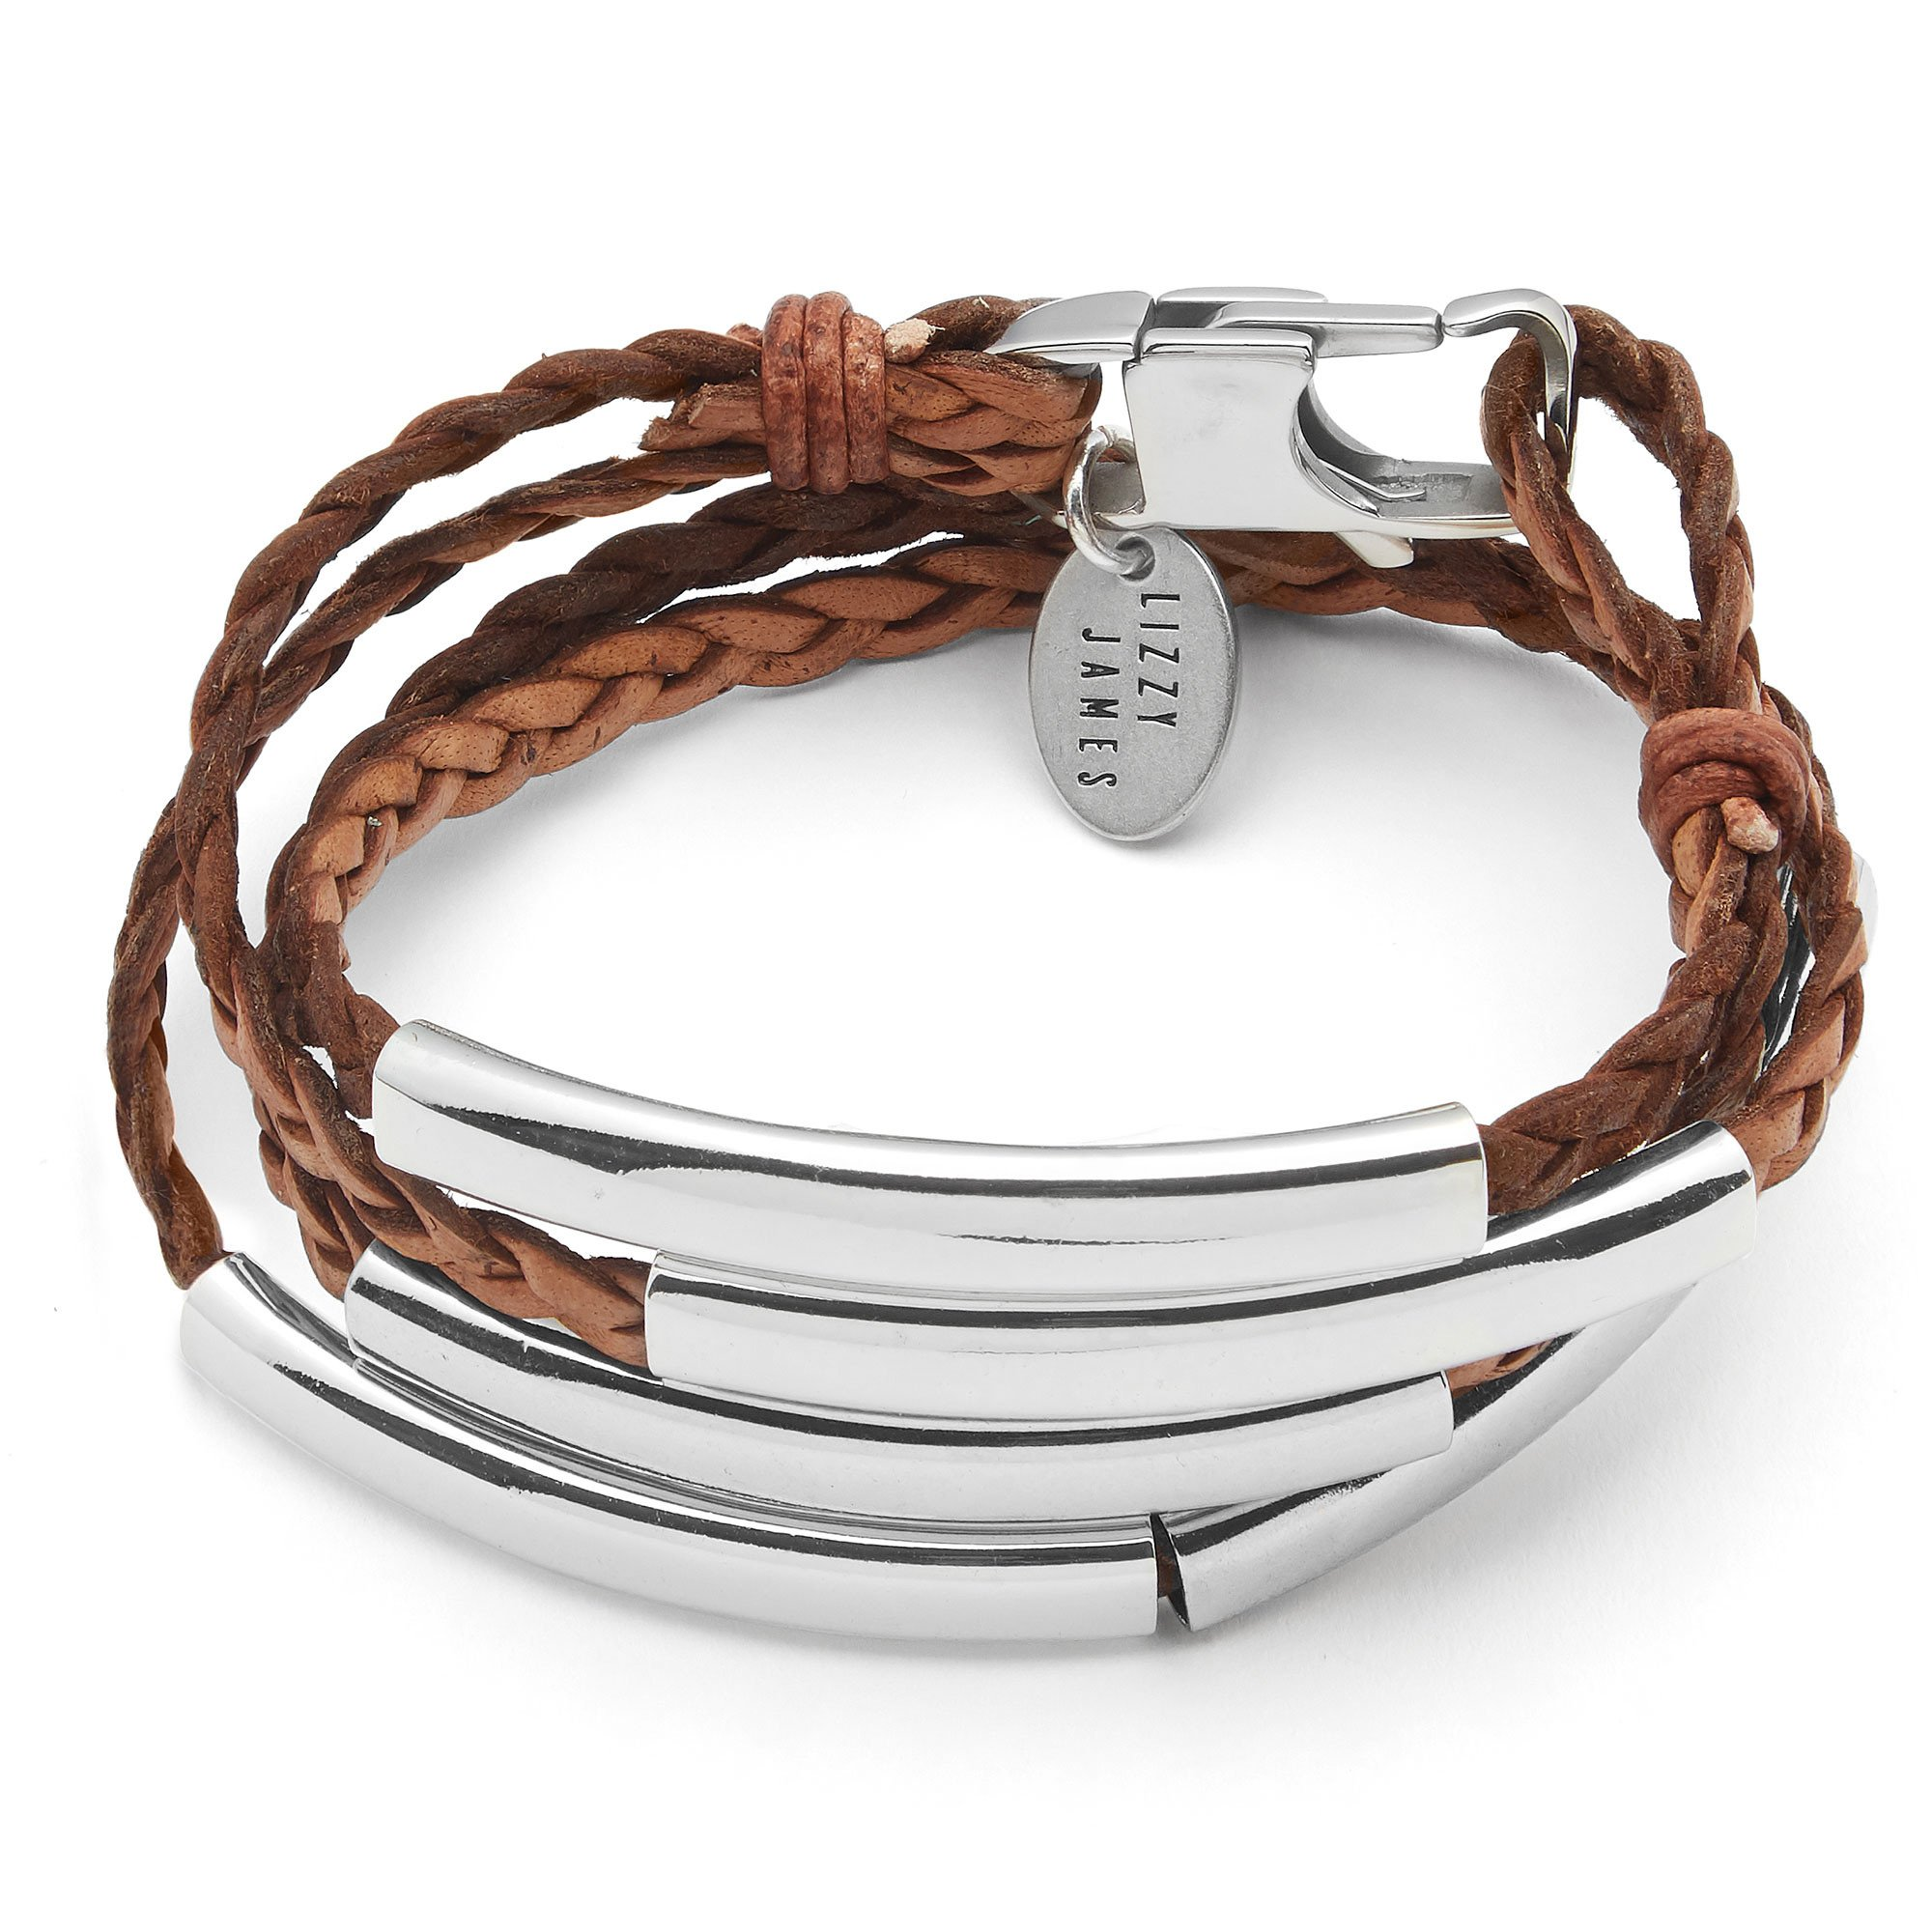 Lizzy James Mini Addison Braided Leather Wrap Bracelet with Silverplate Crescents in Natural Antique Brown Leather (XXLarge)